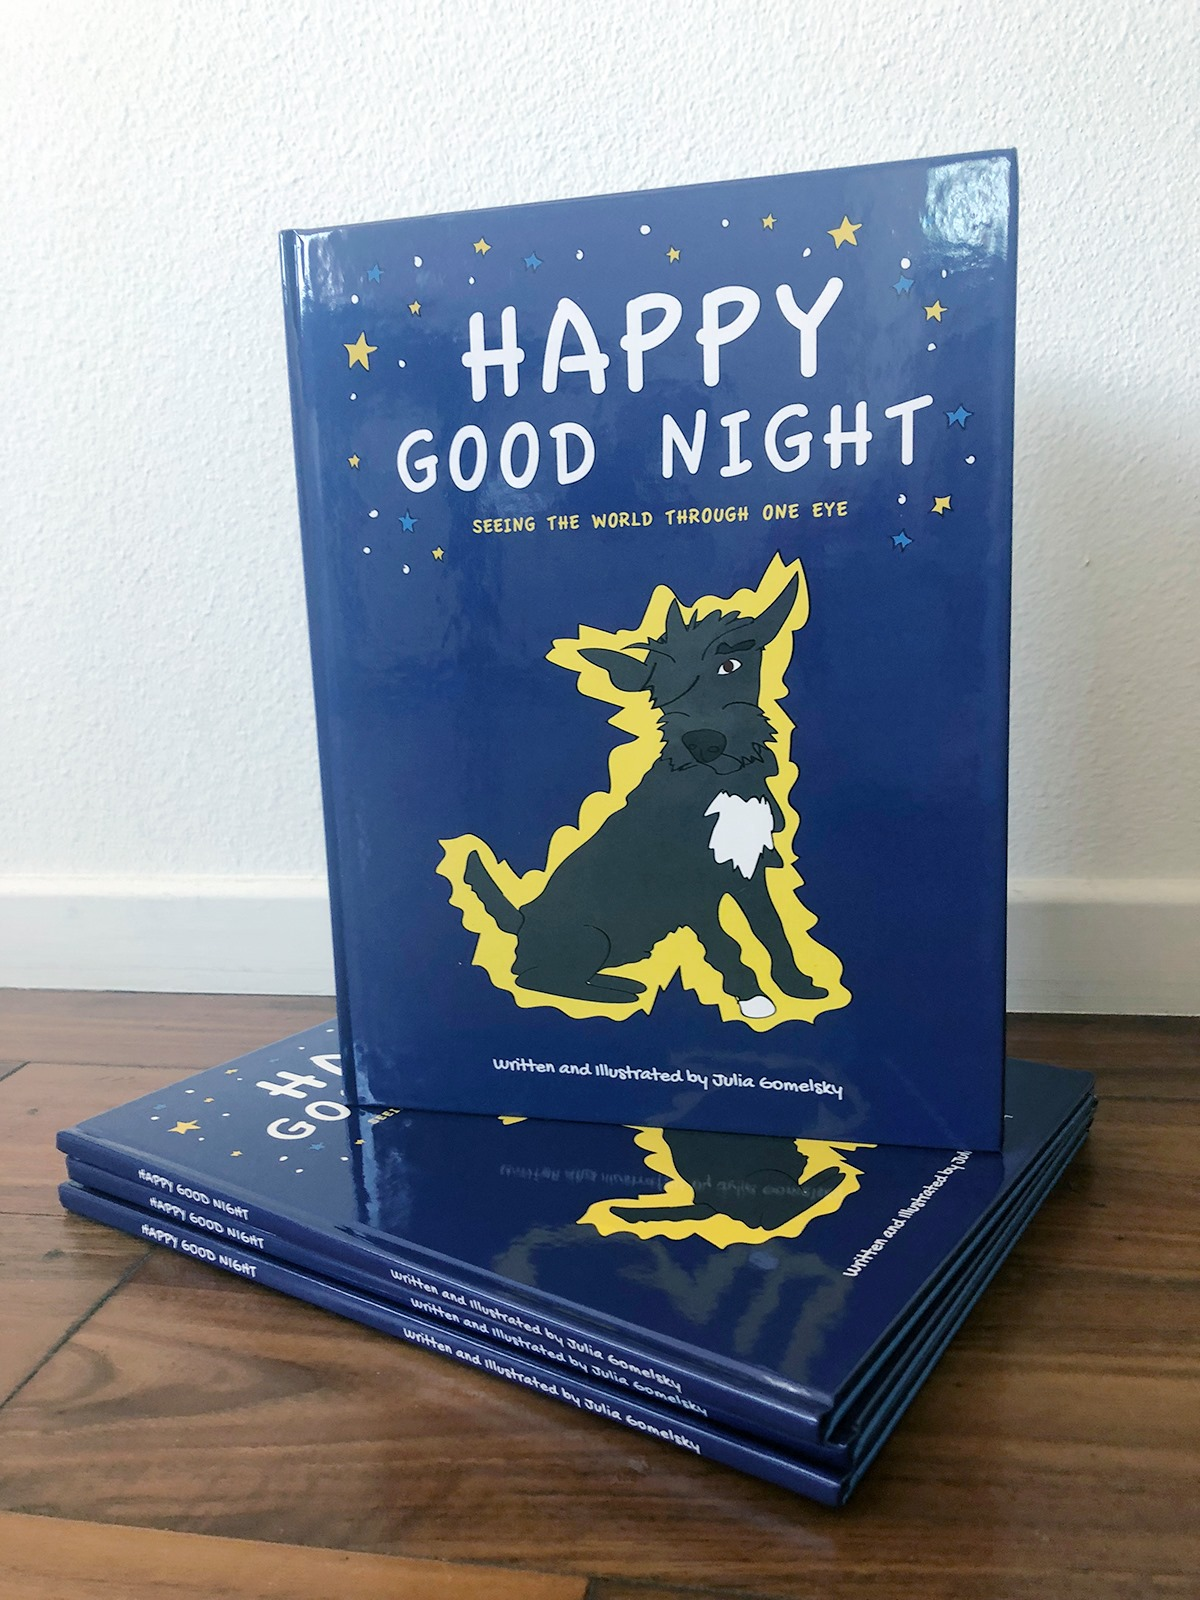 Happy Good Night children's book by Julia Gomelsky